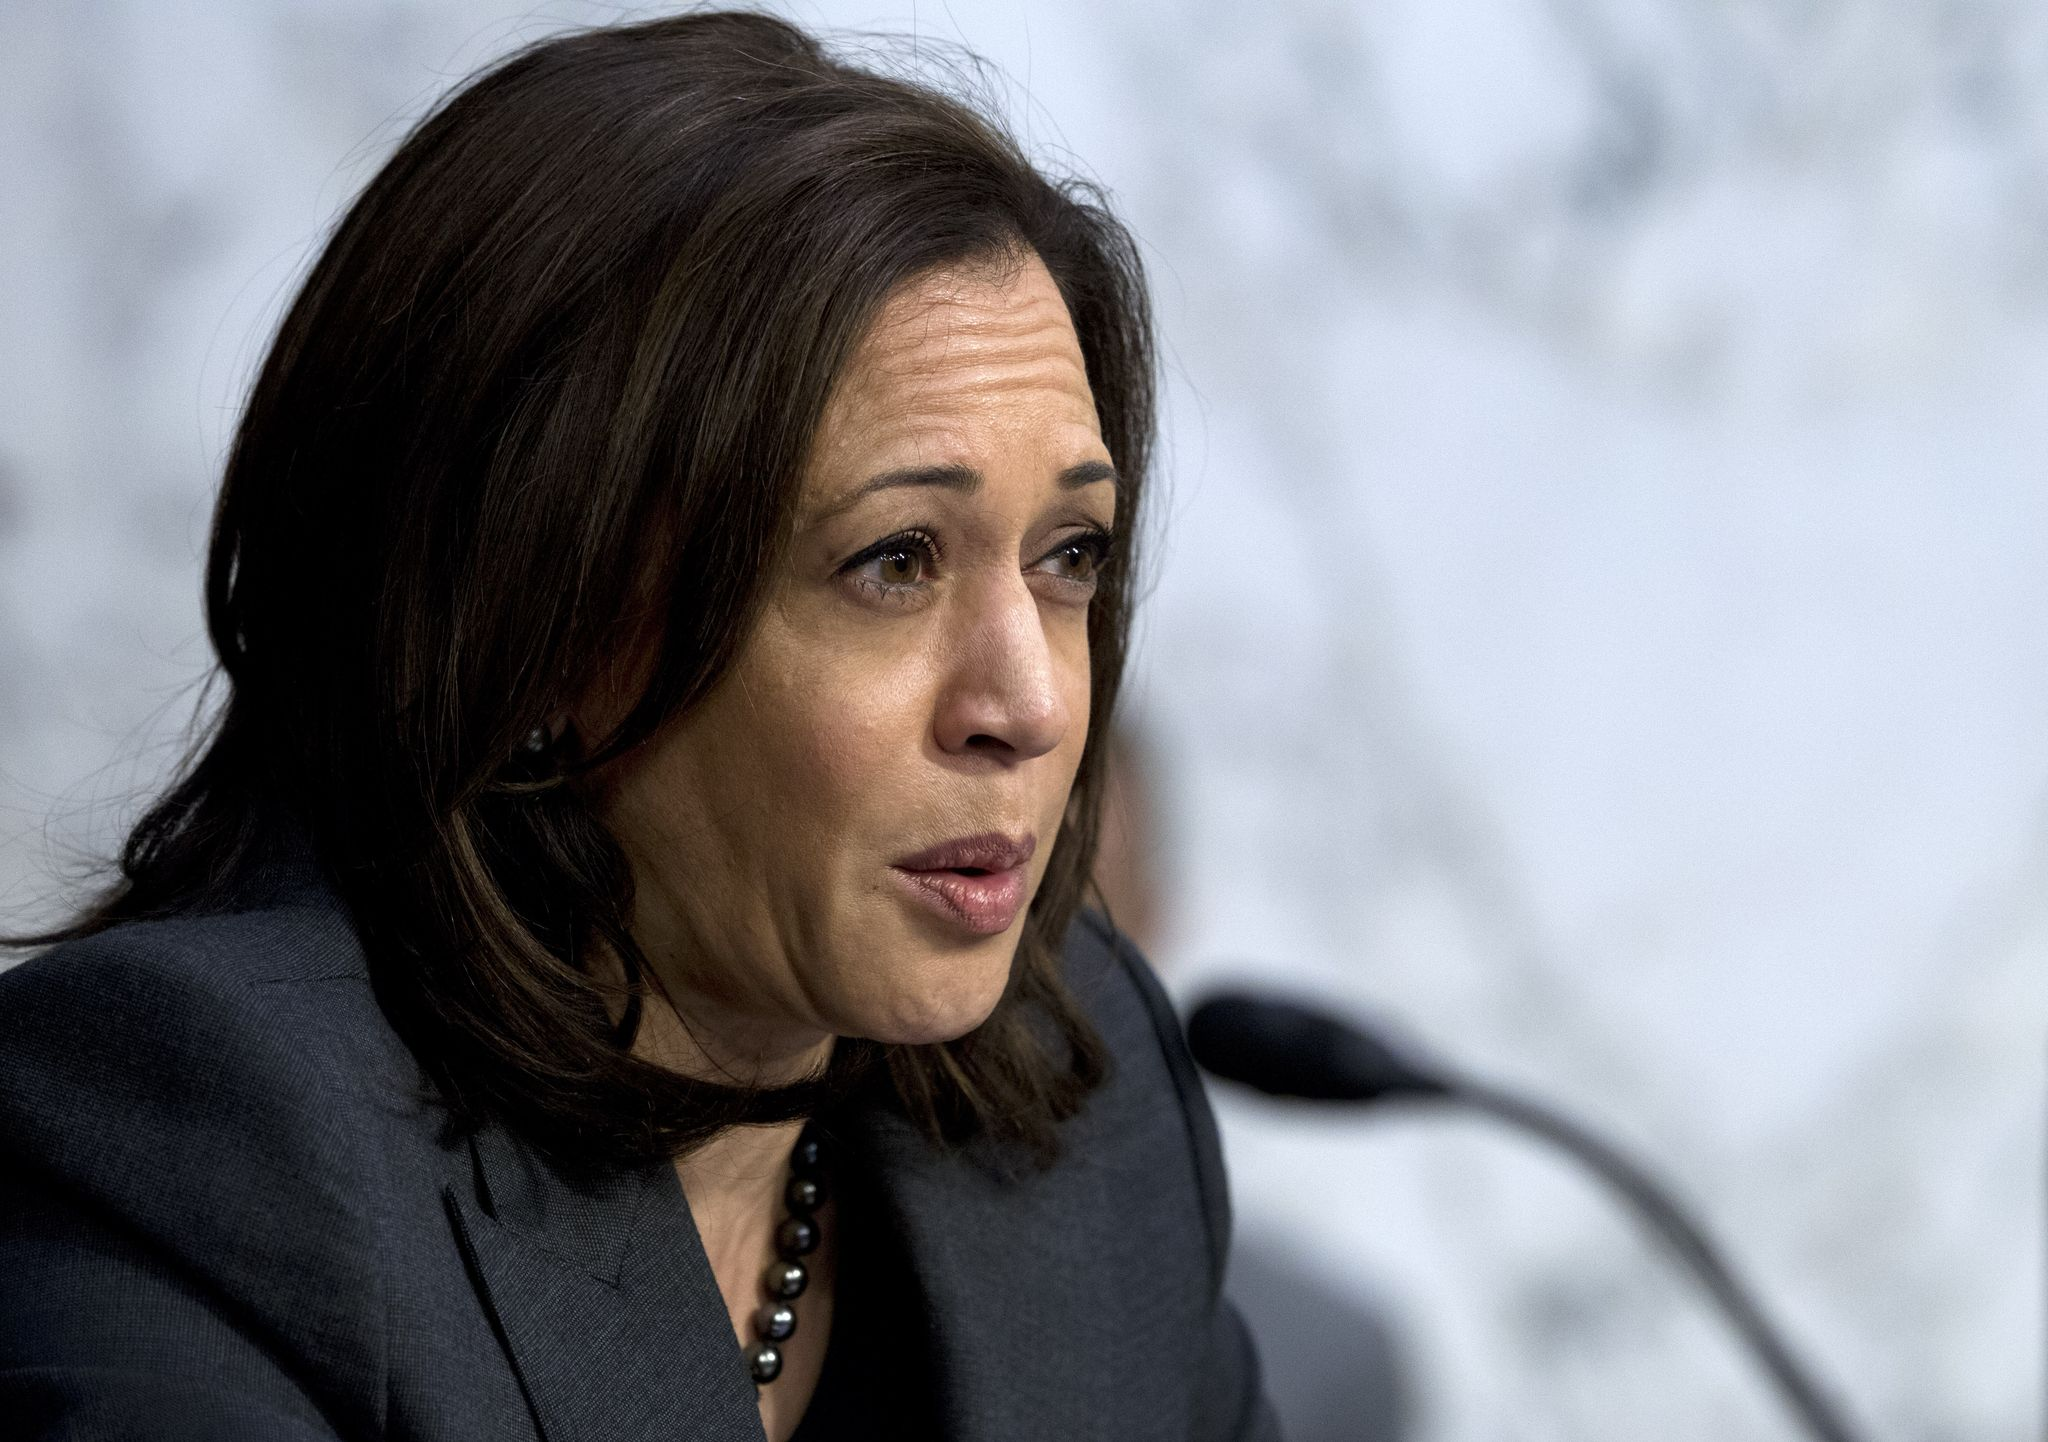 Kamala Harris' Jamaican father rips her for pushing pot stereotype 'in pursuit of identity politics'